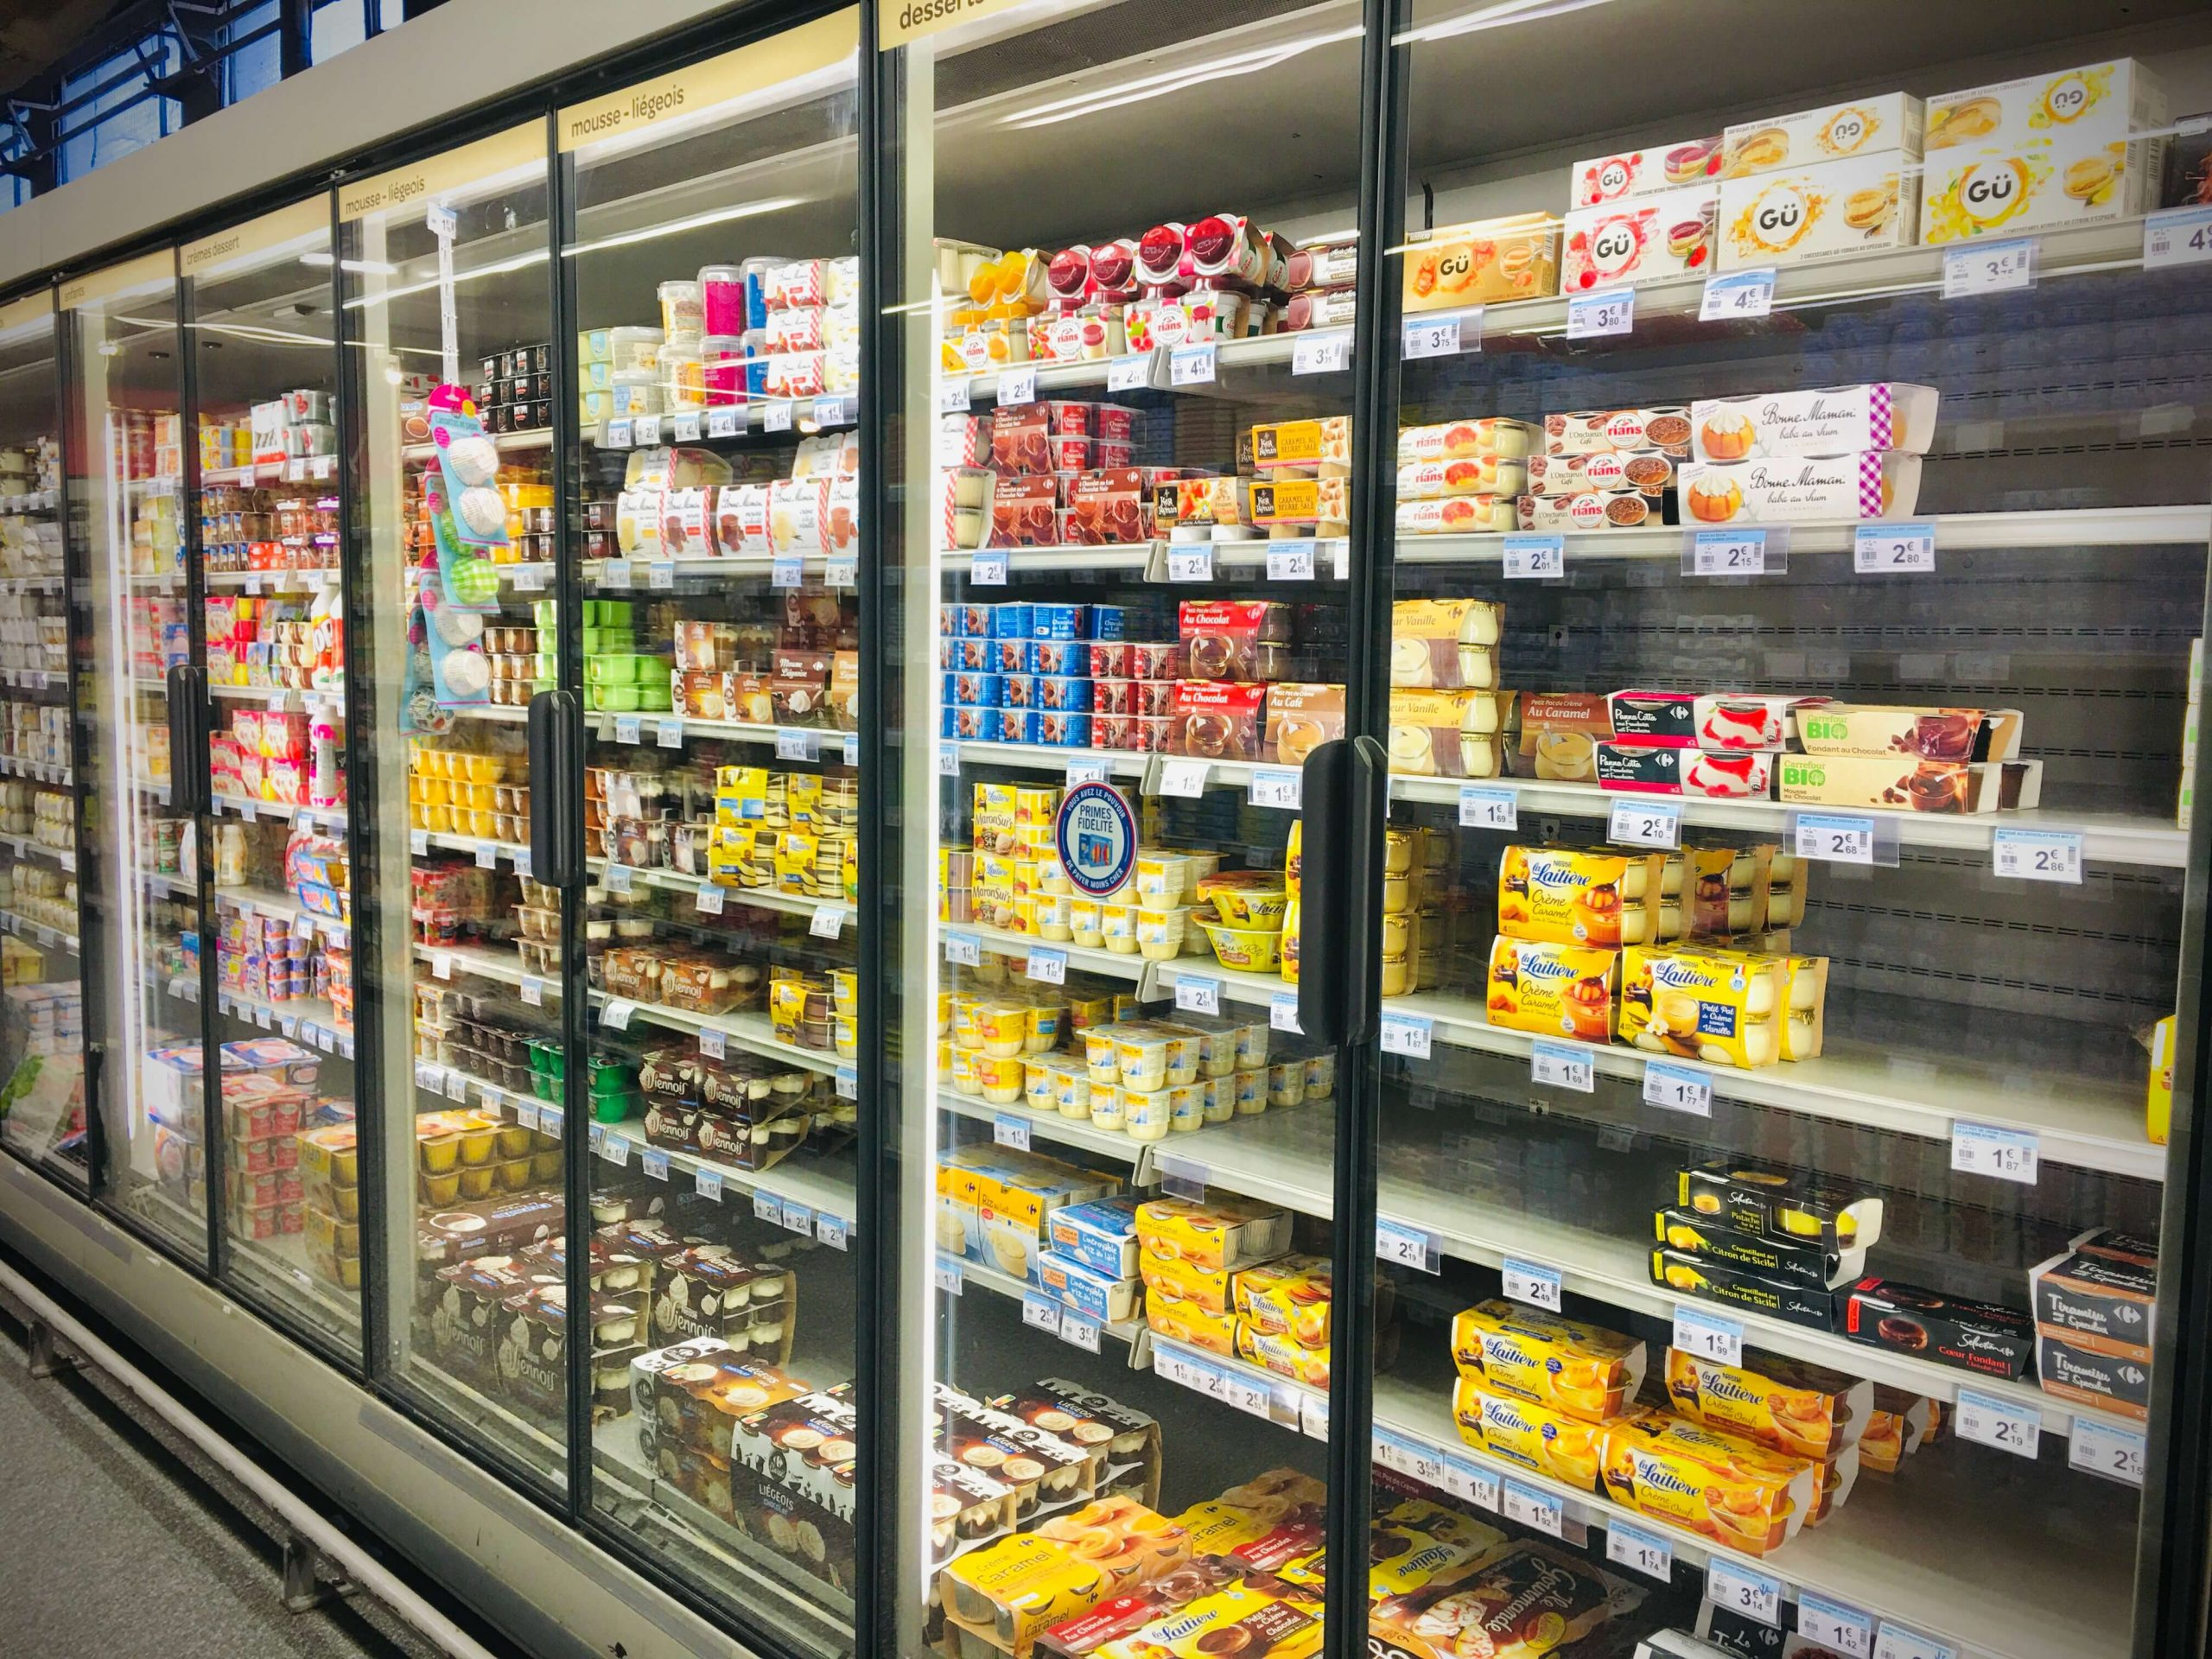 A refrigerator case of dairy products